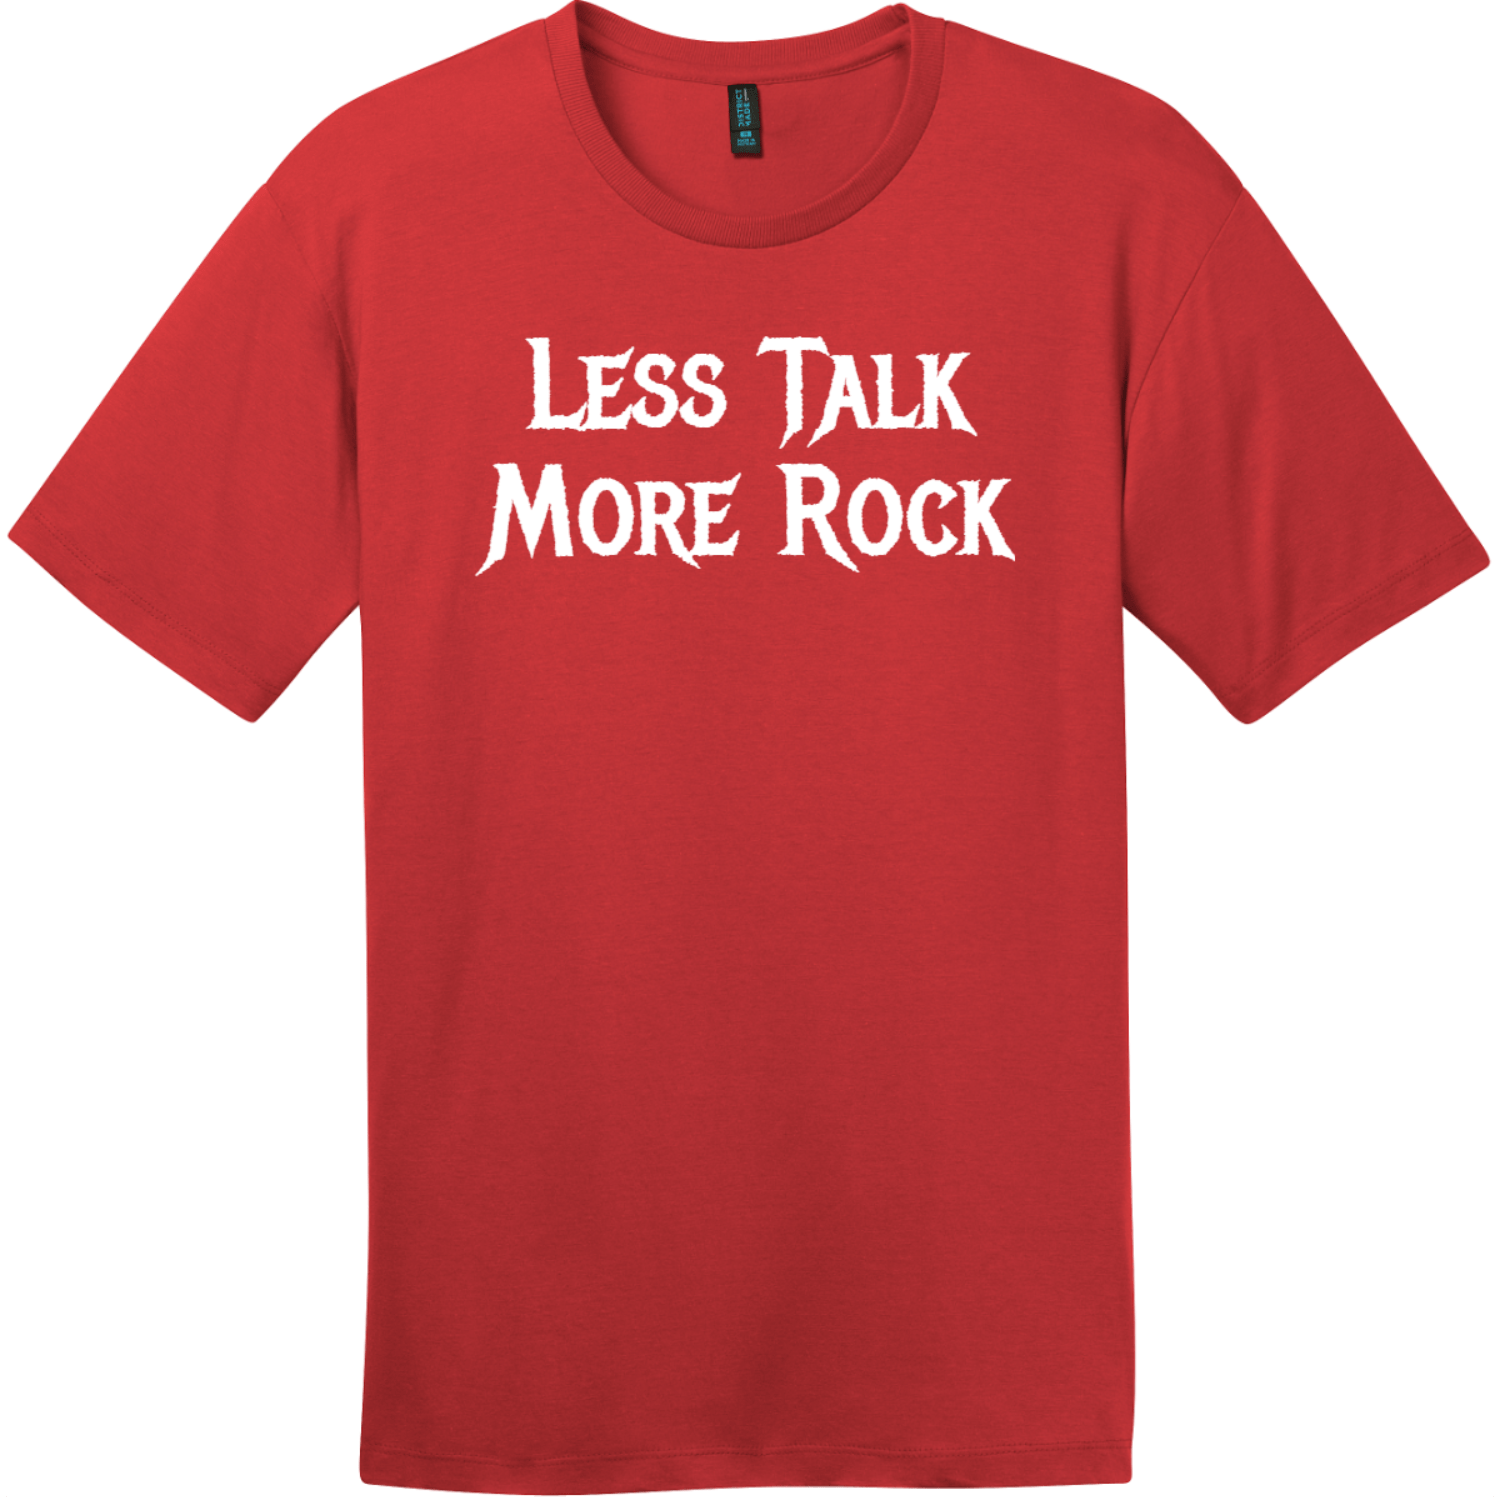 Less Talk More Rock T-Shirt Classic Red District Perfect Weight Tee DT104